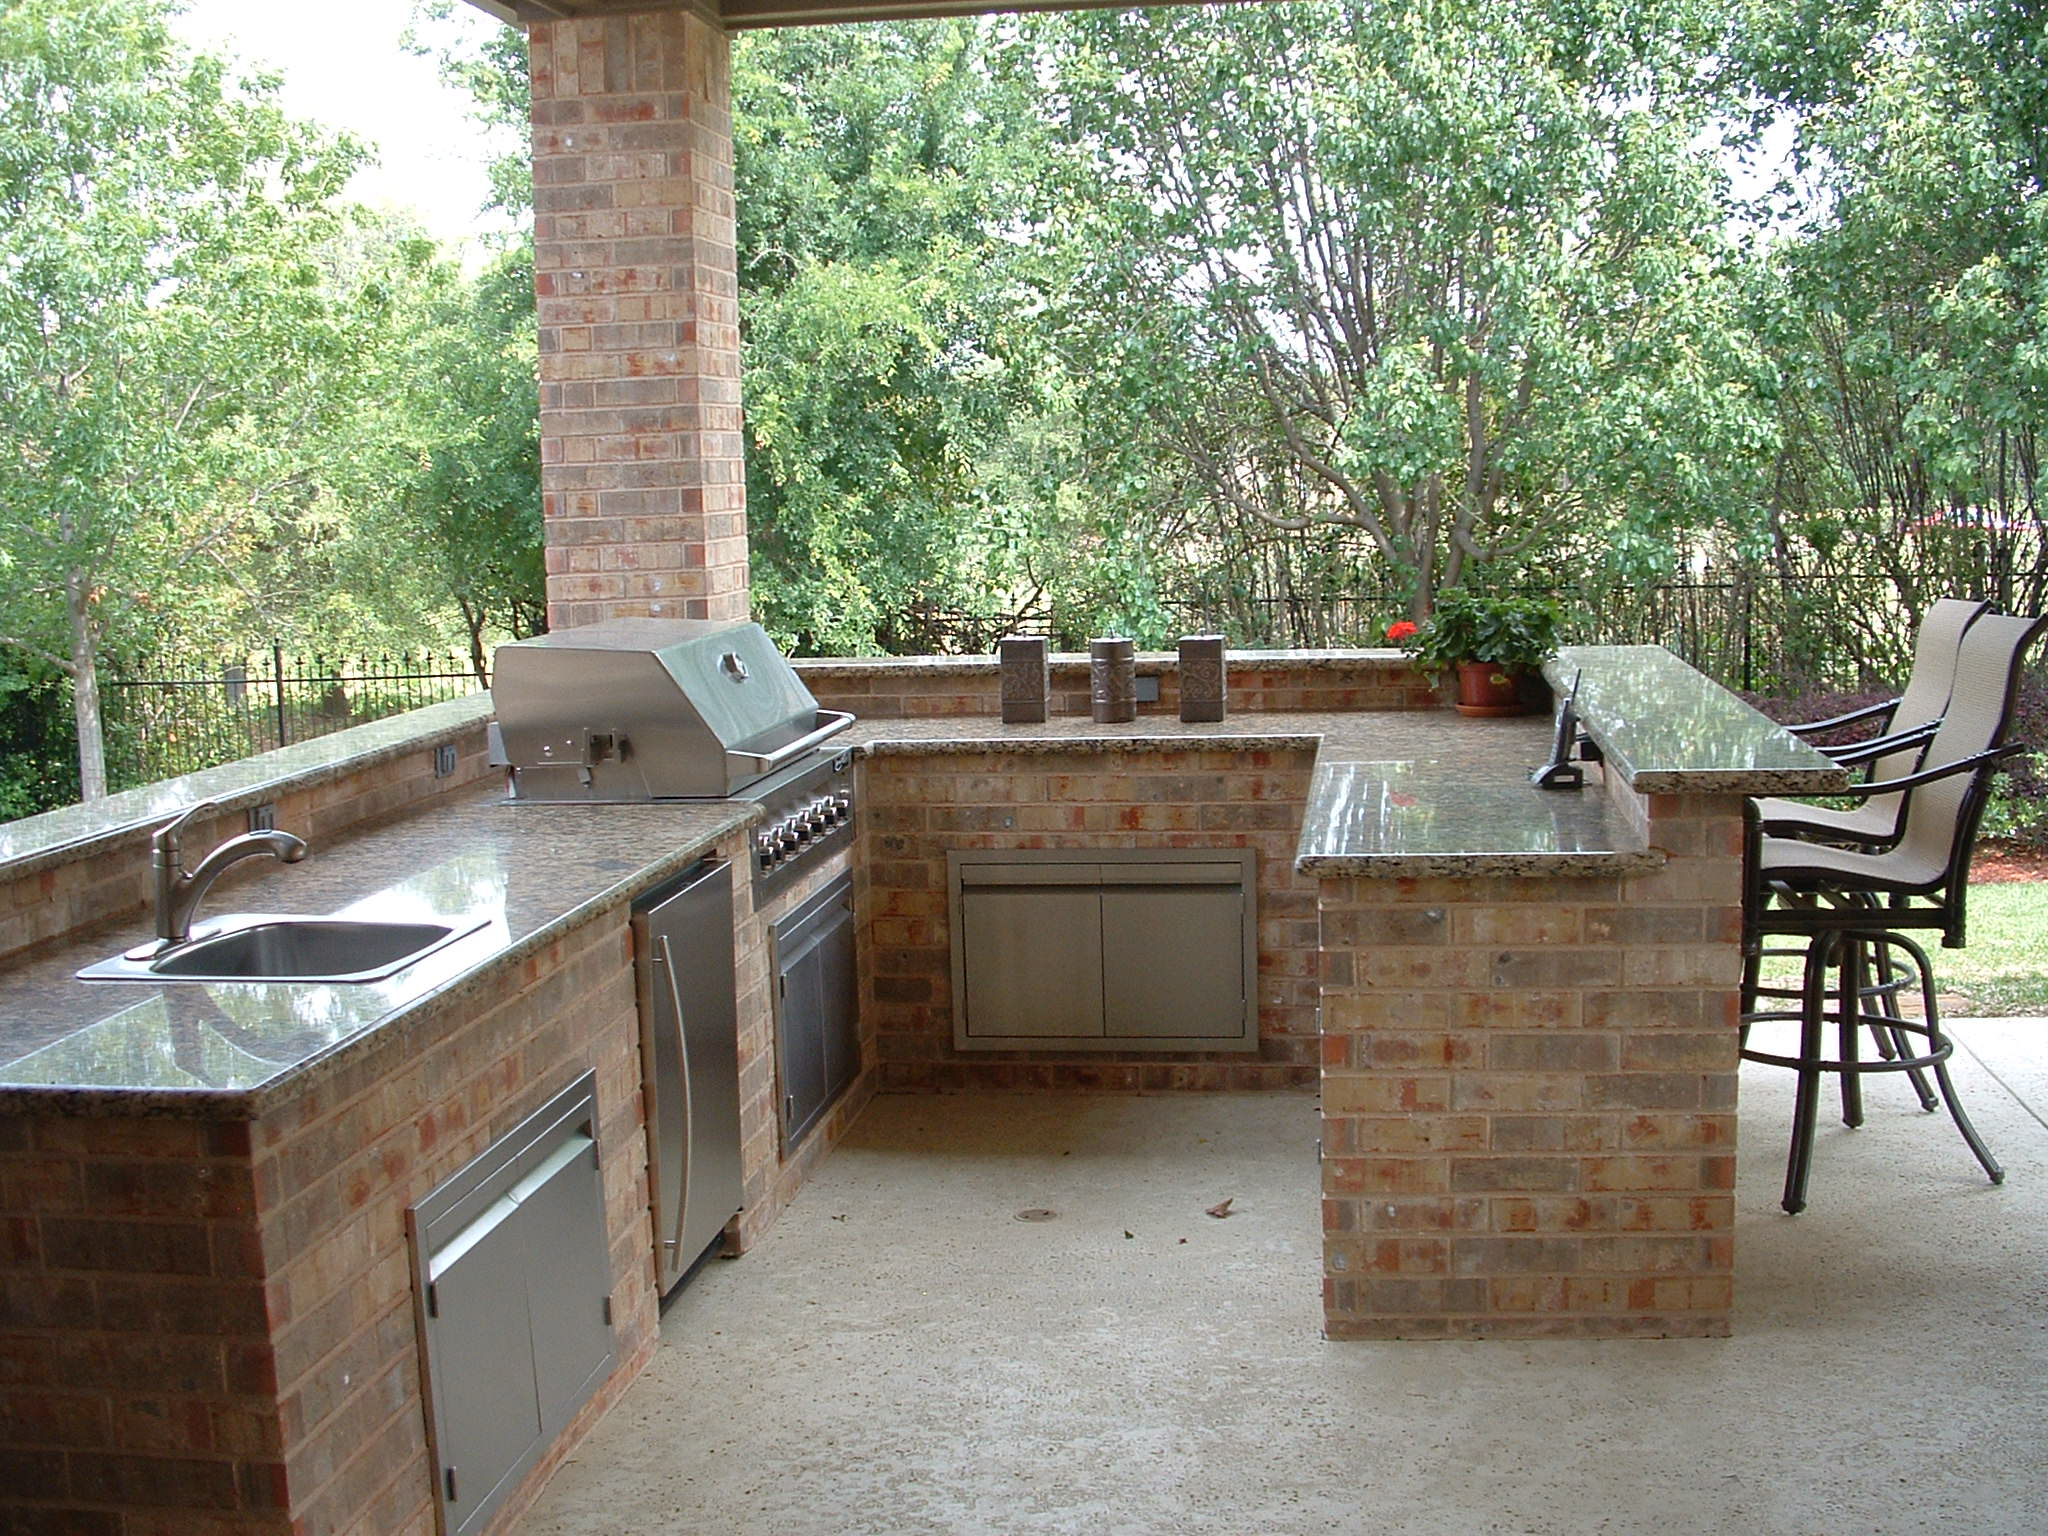 outdoor kitchen equipment burner denver outdoor kitchens kitchens equipment installations